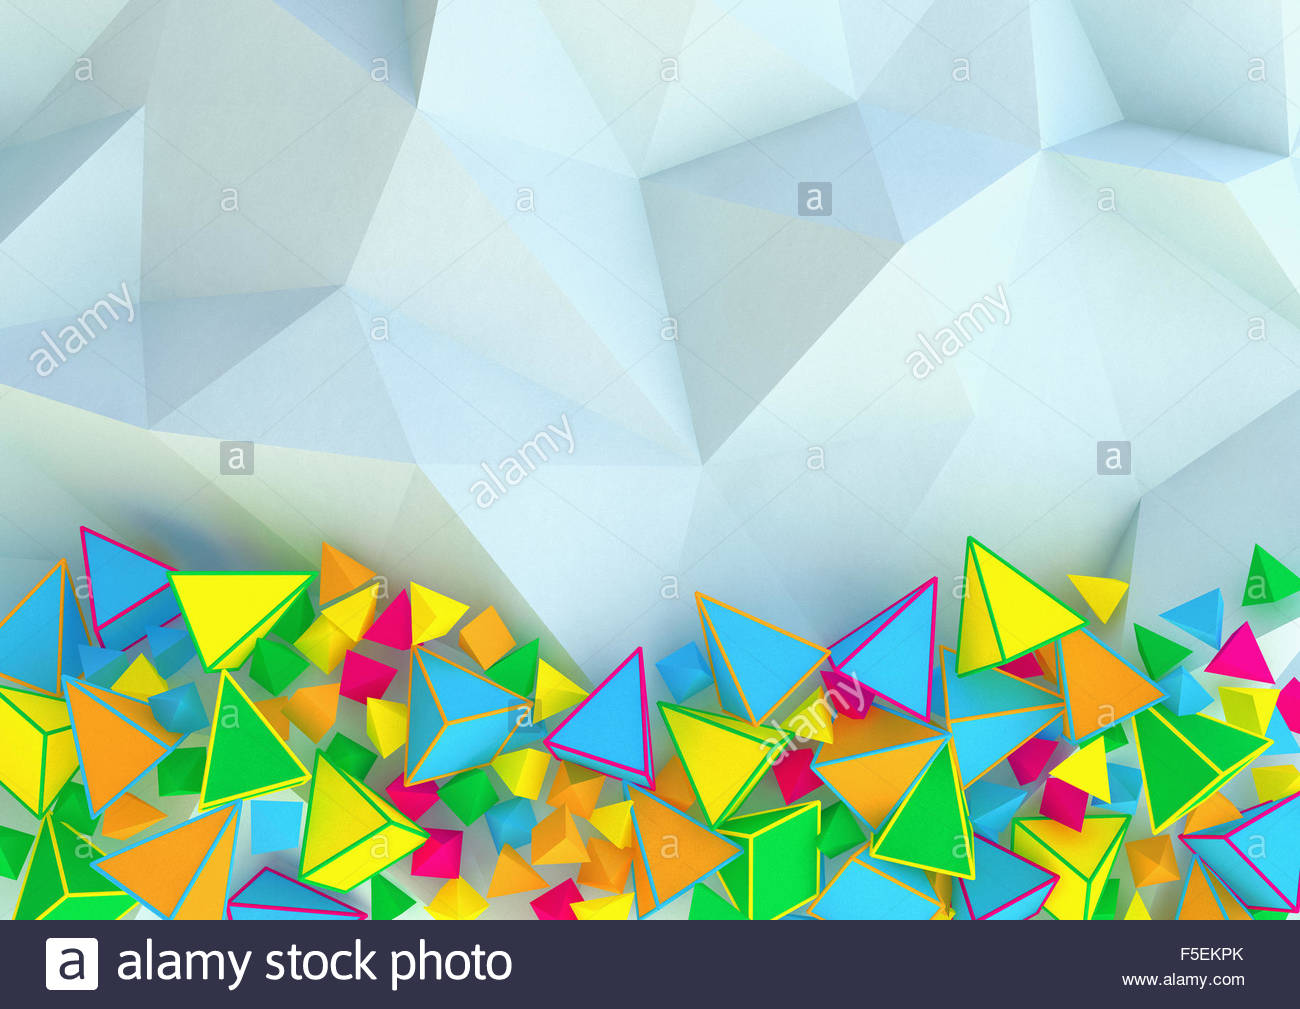 Abstract three dimensional pattern of contrasting pyramid shapes - Stock Image